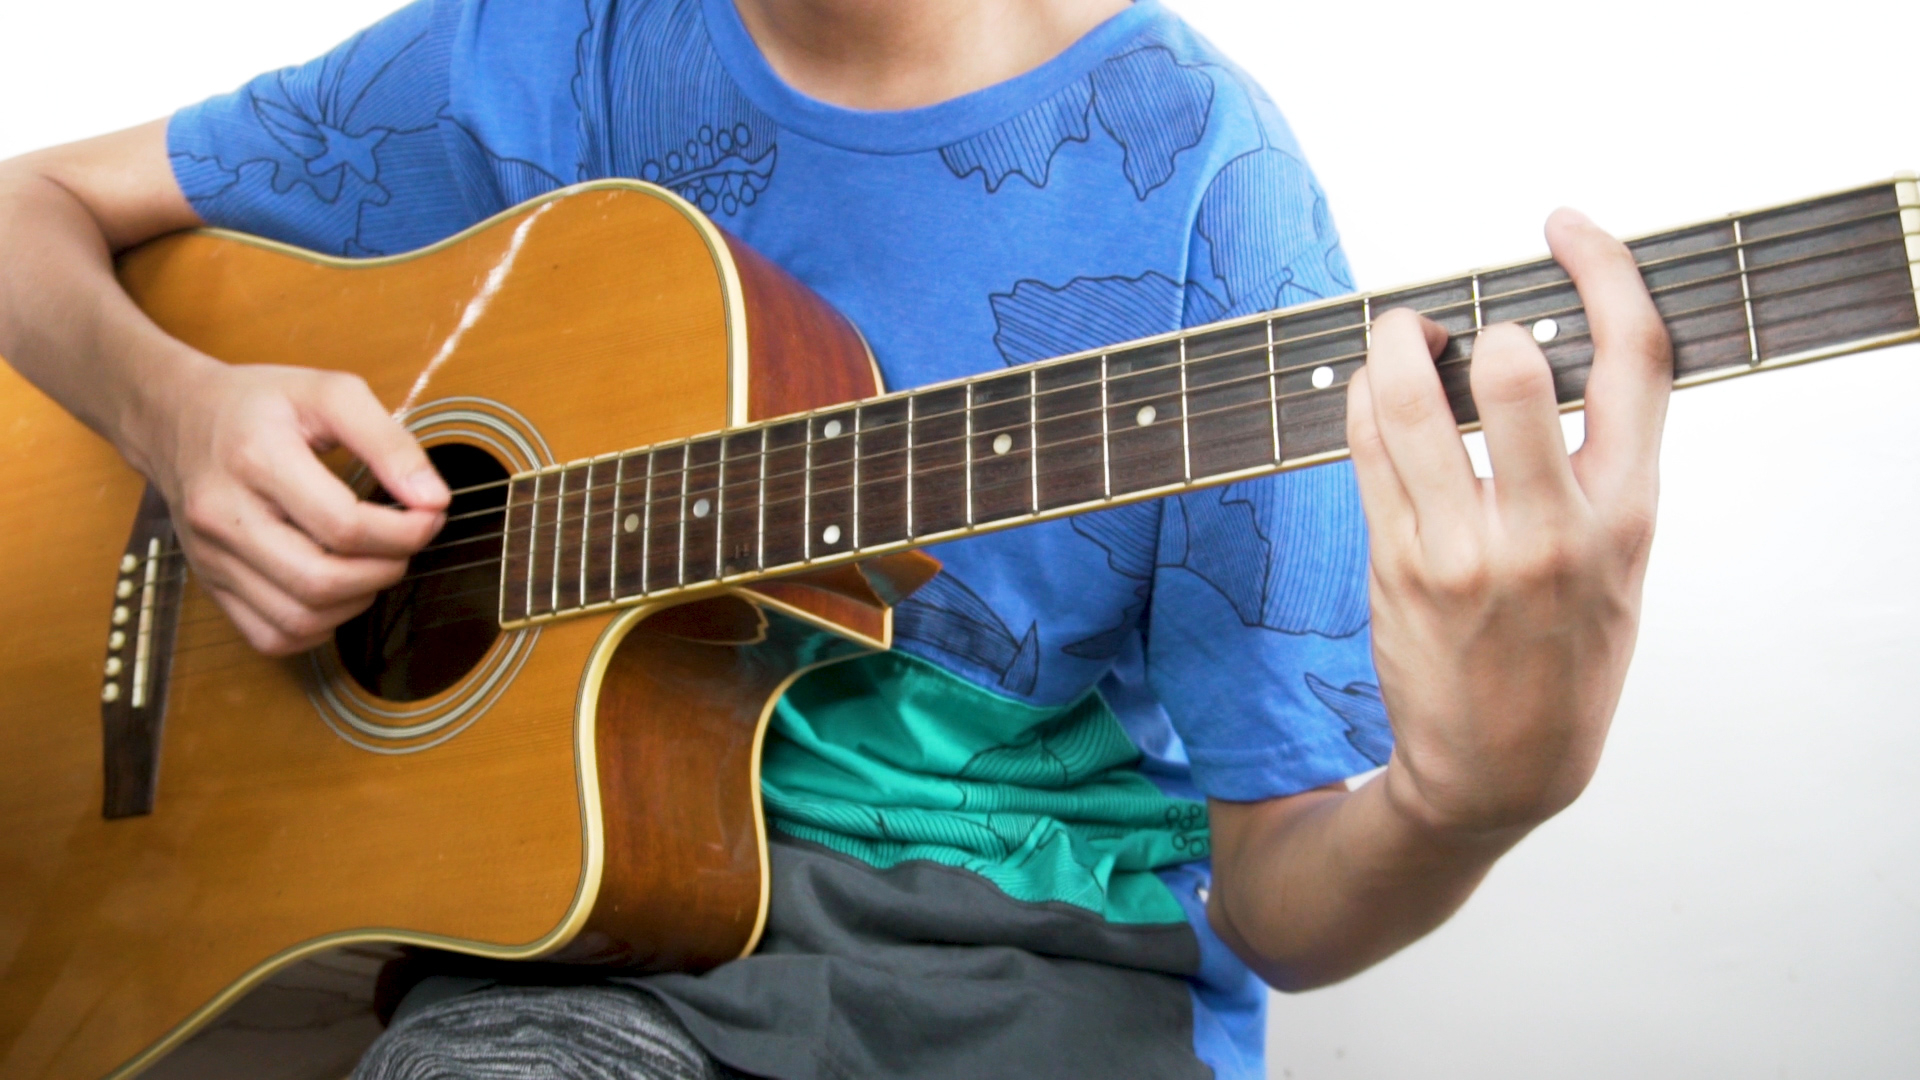 Bm7 Guitar Chord 3 Ways To Play A Bm Chord On Guitar Wikihow